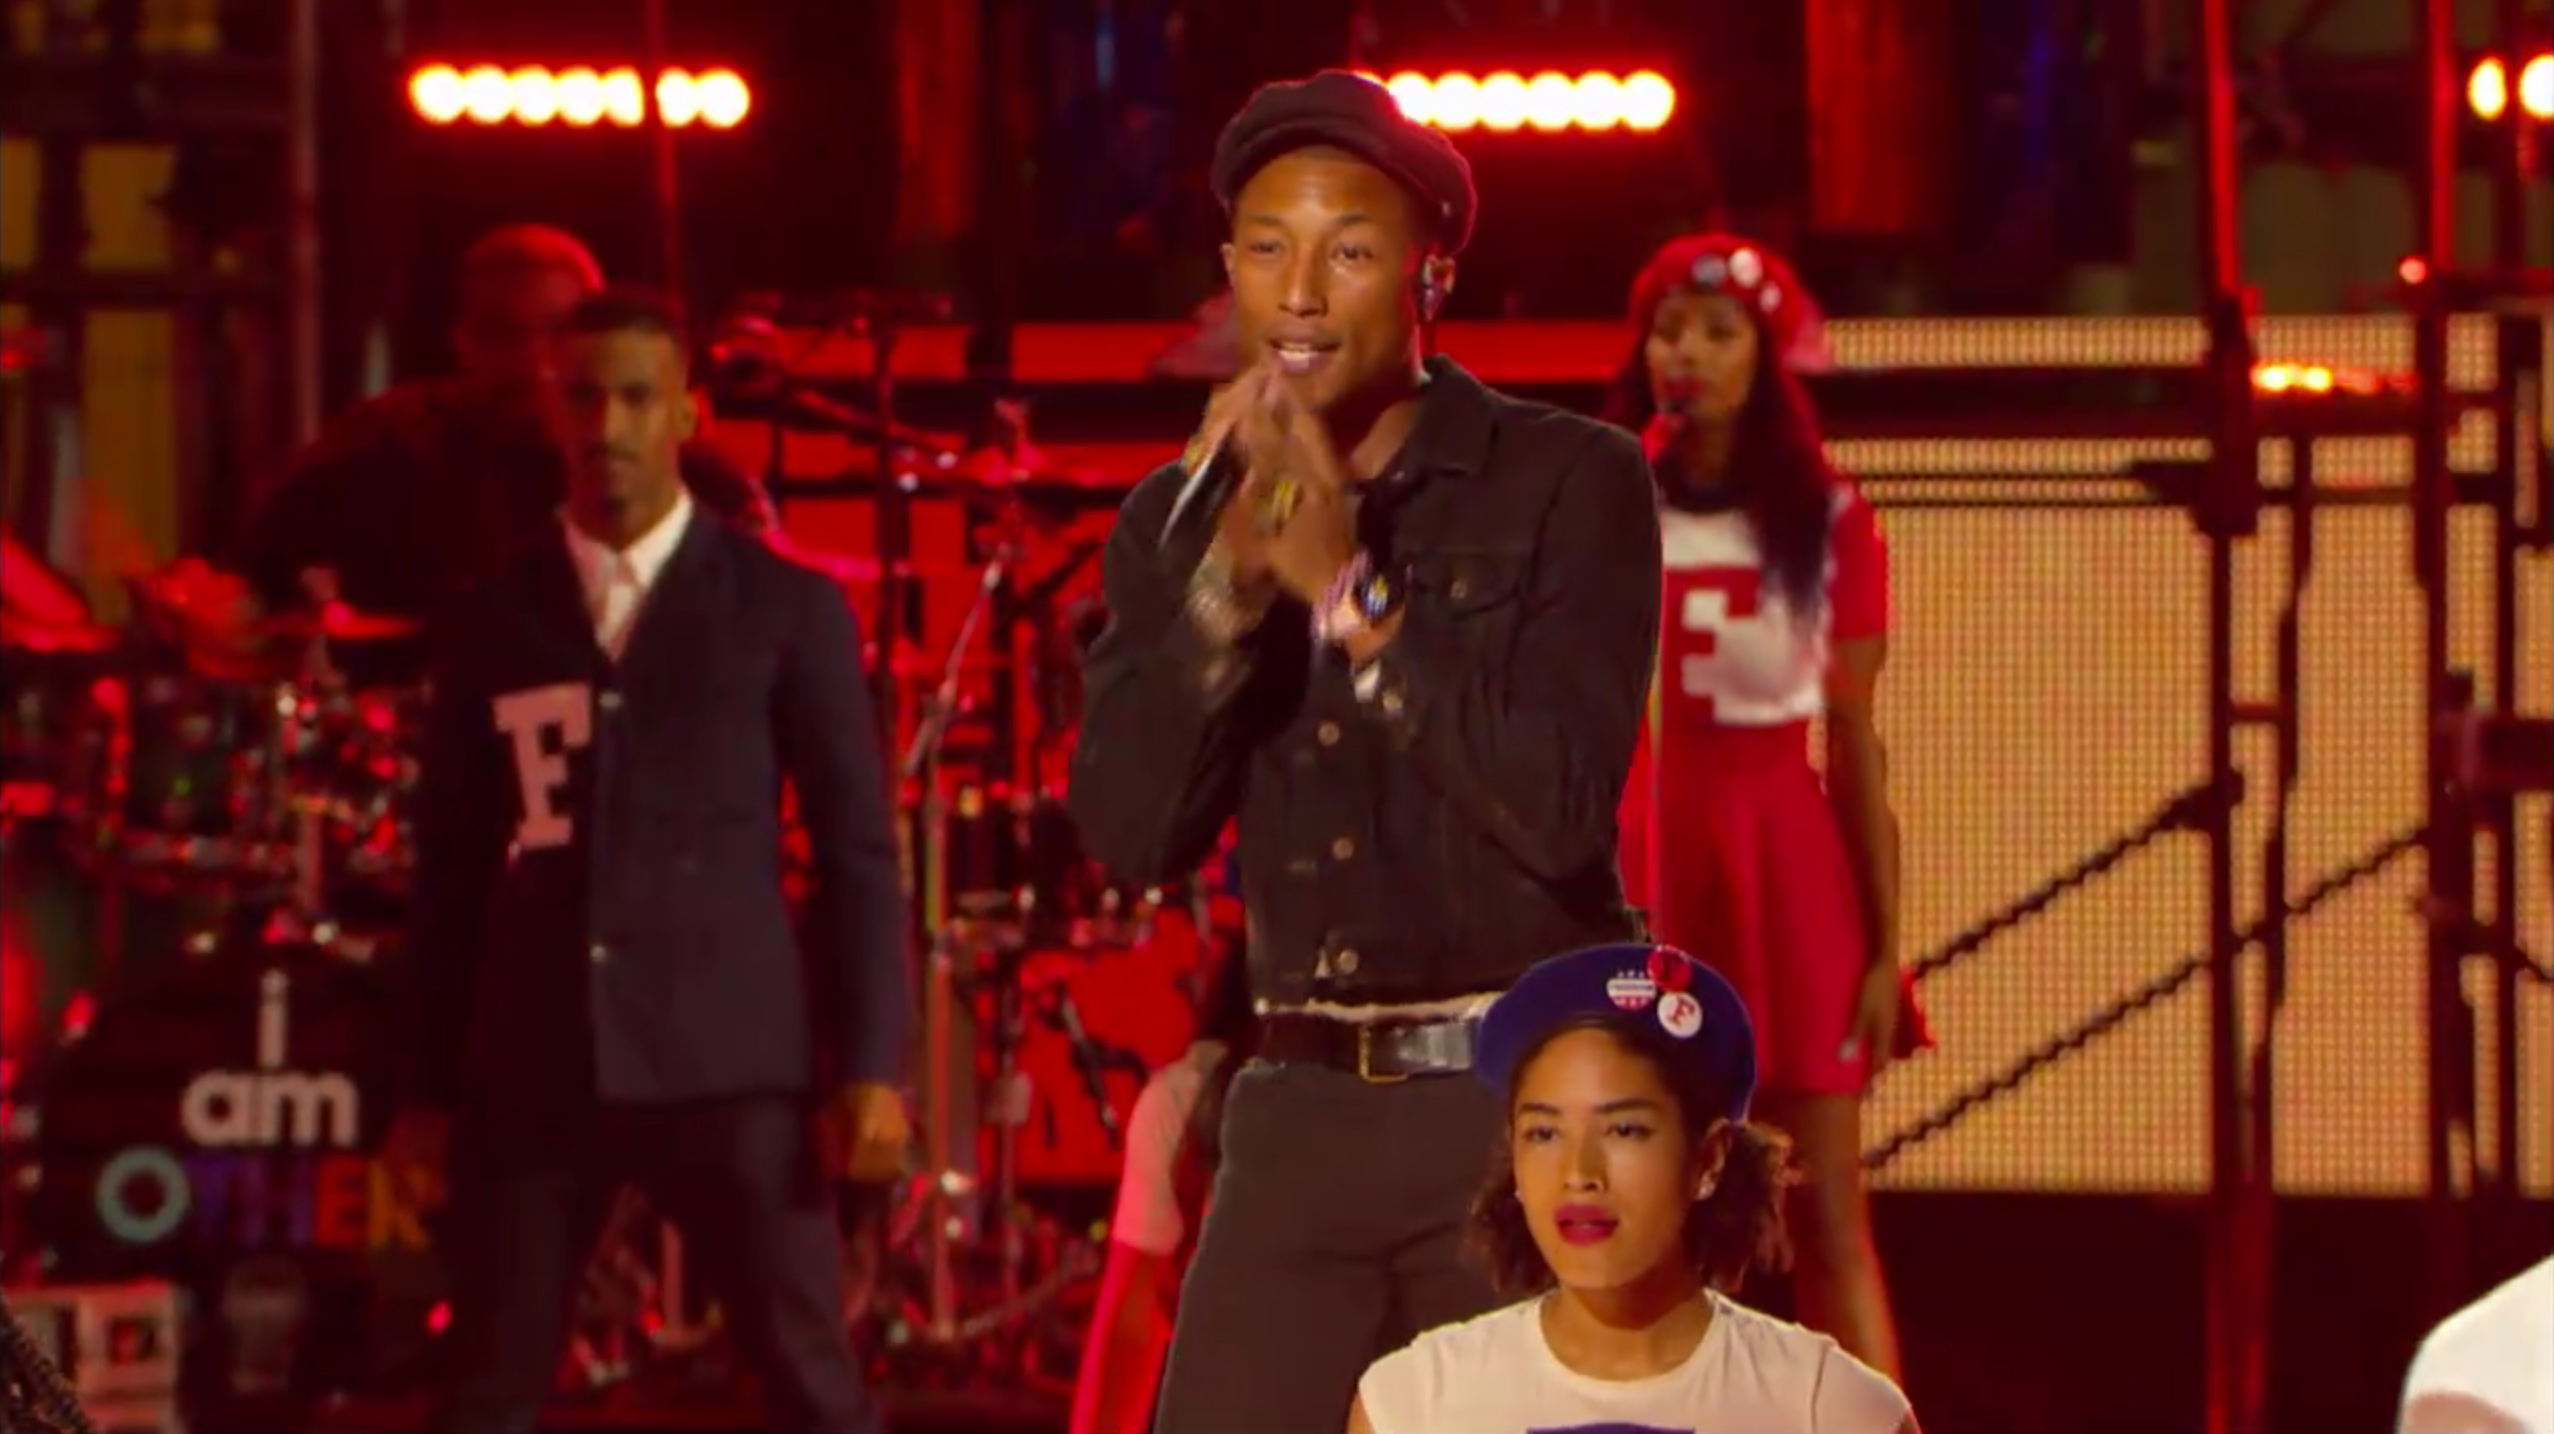 Sean Bankhead performing with Pharrell Williams at the MTV VMAs